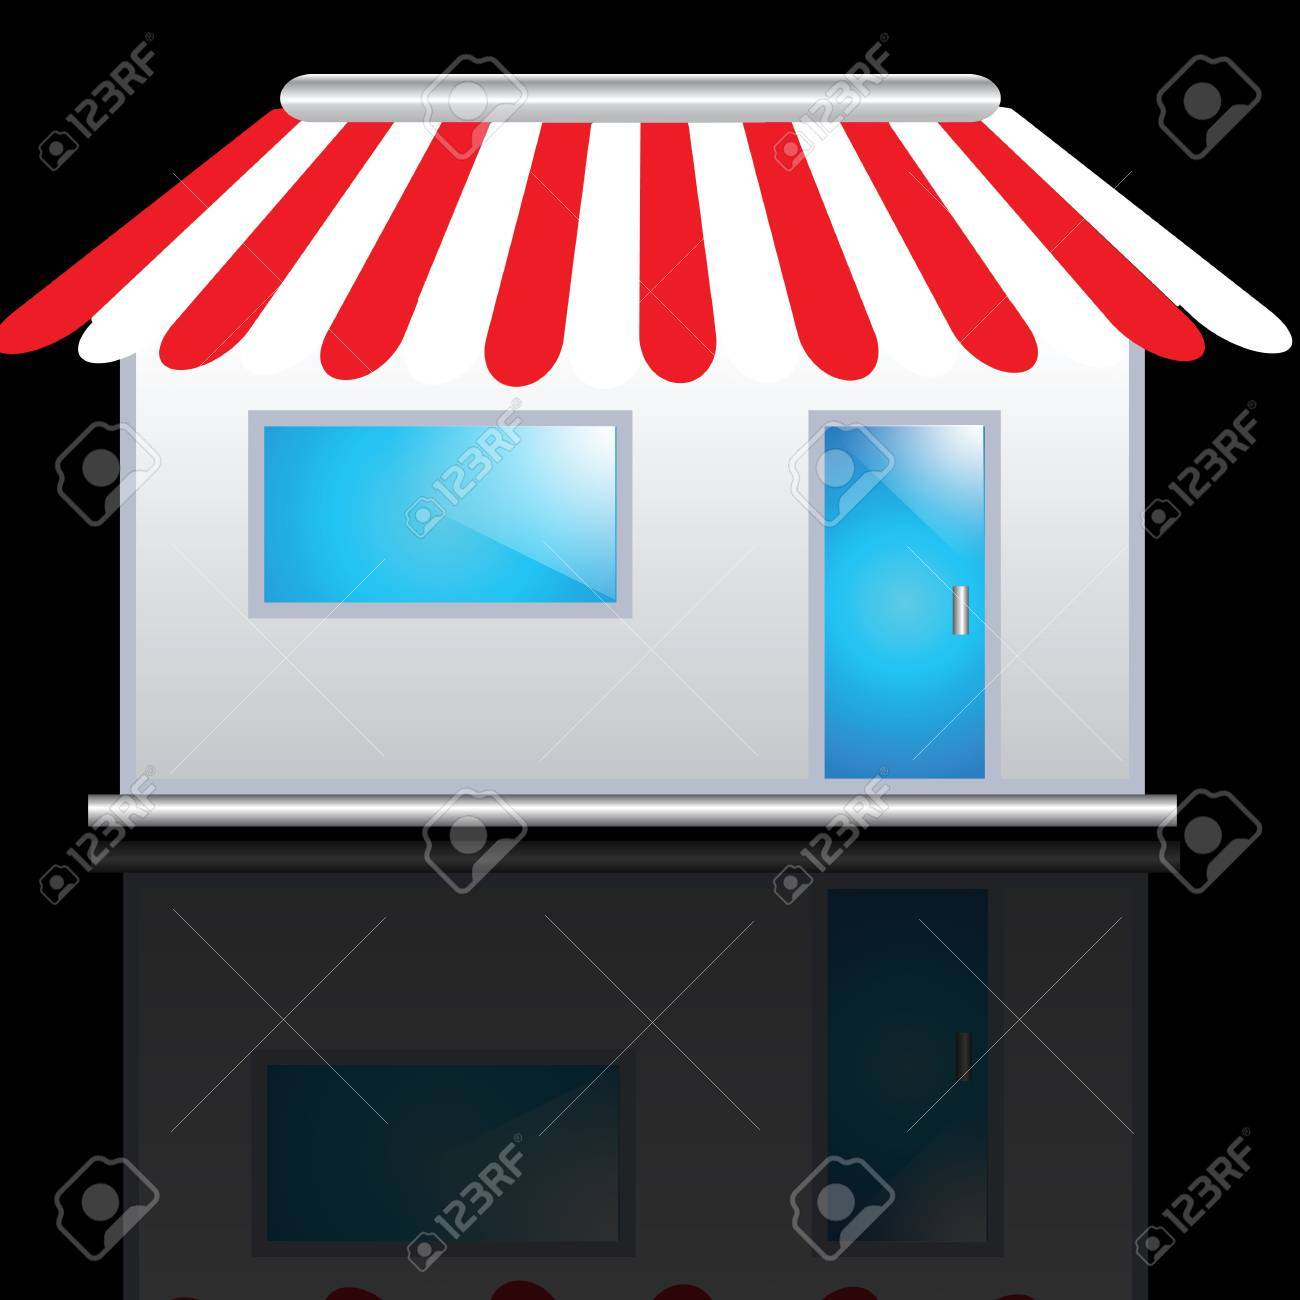 Cute shop icon with red awnings Stock Photo - 8056401